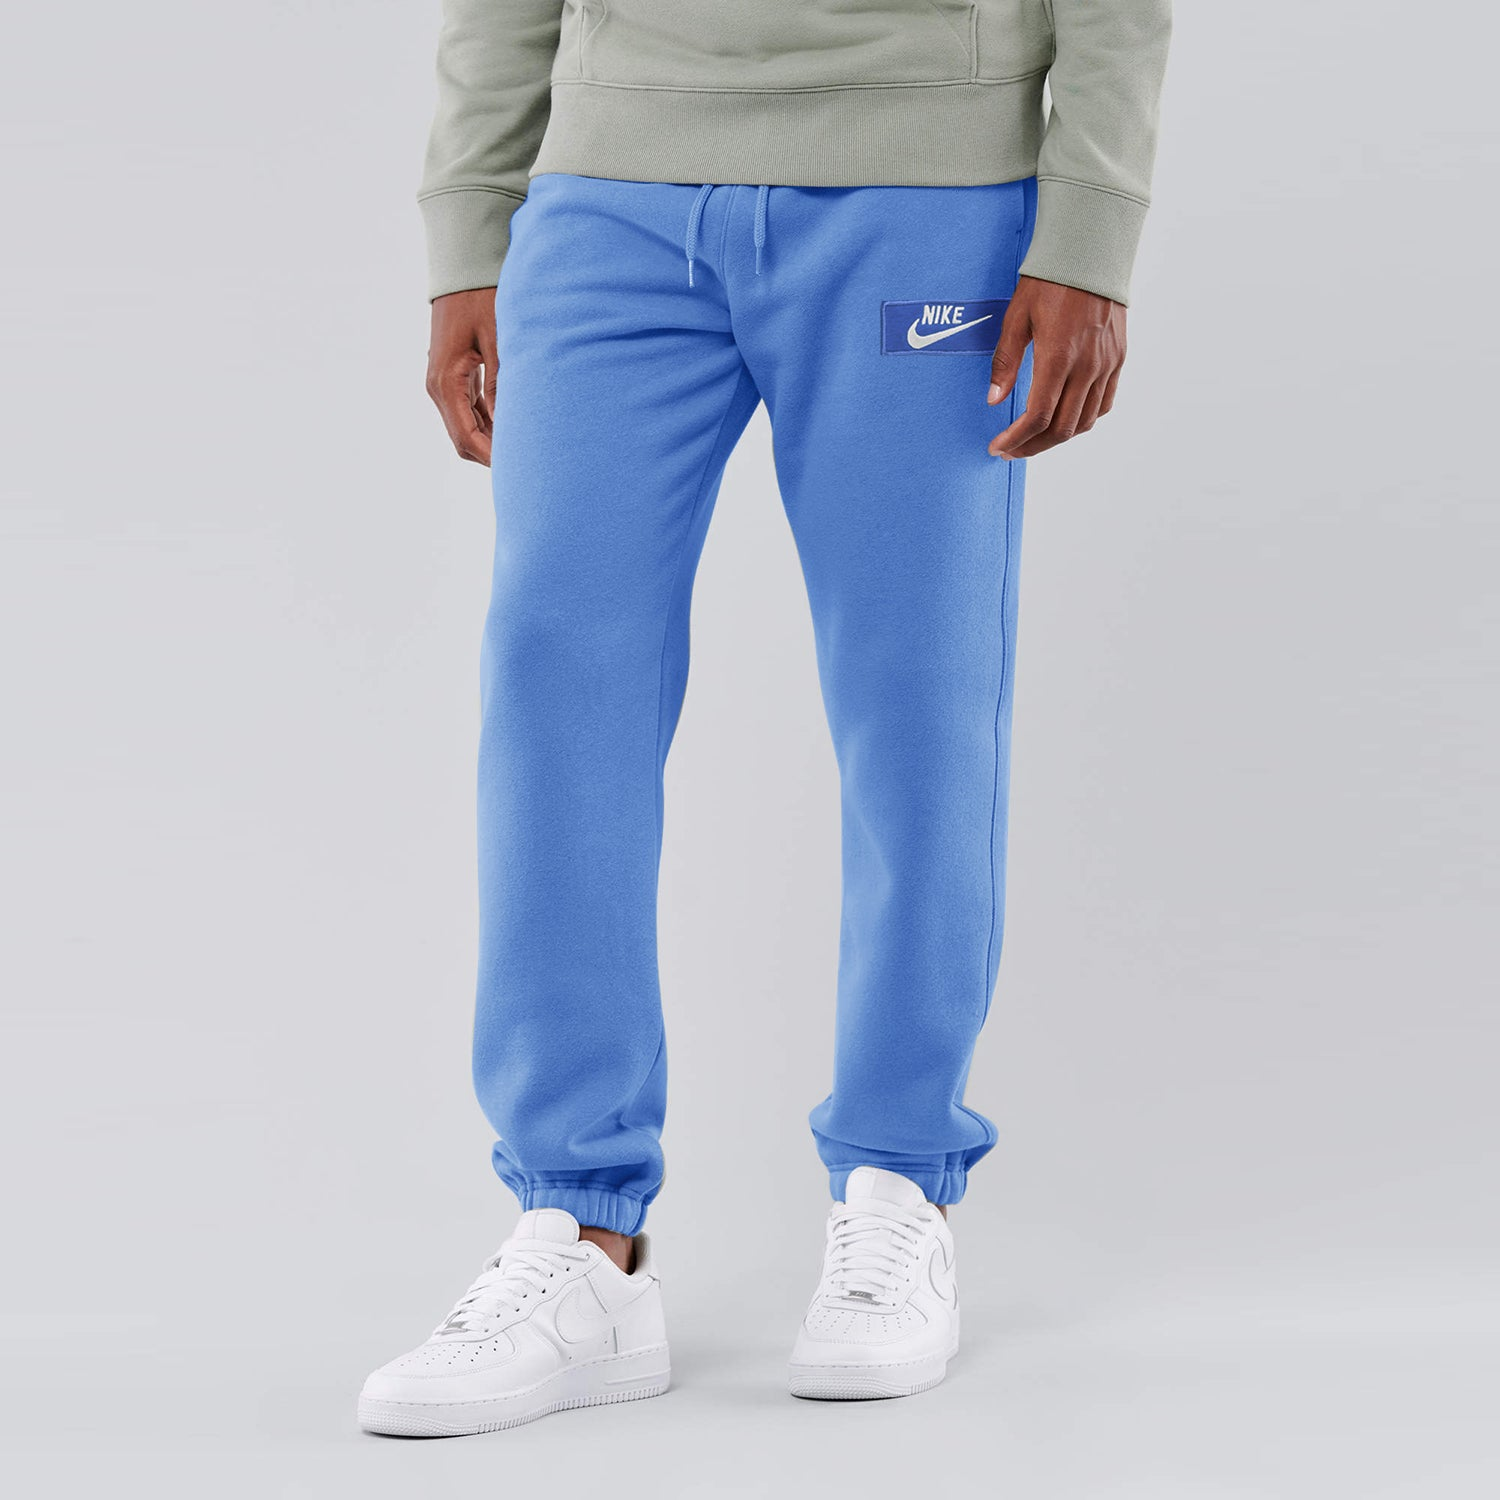 NK Terry Fleece Gathering Fit Pant Style Jogging Trouser For Men-Blue with White Embroidery-BE12953